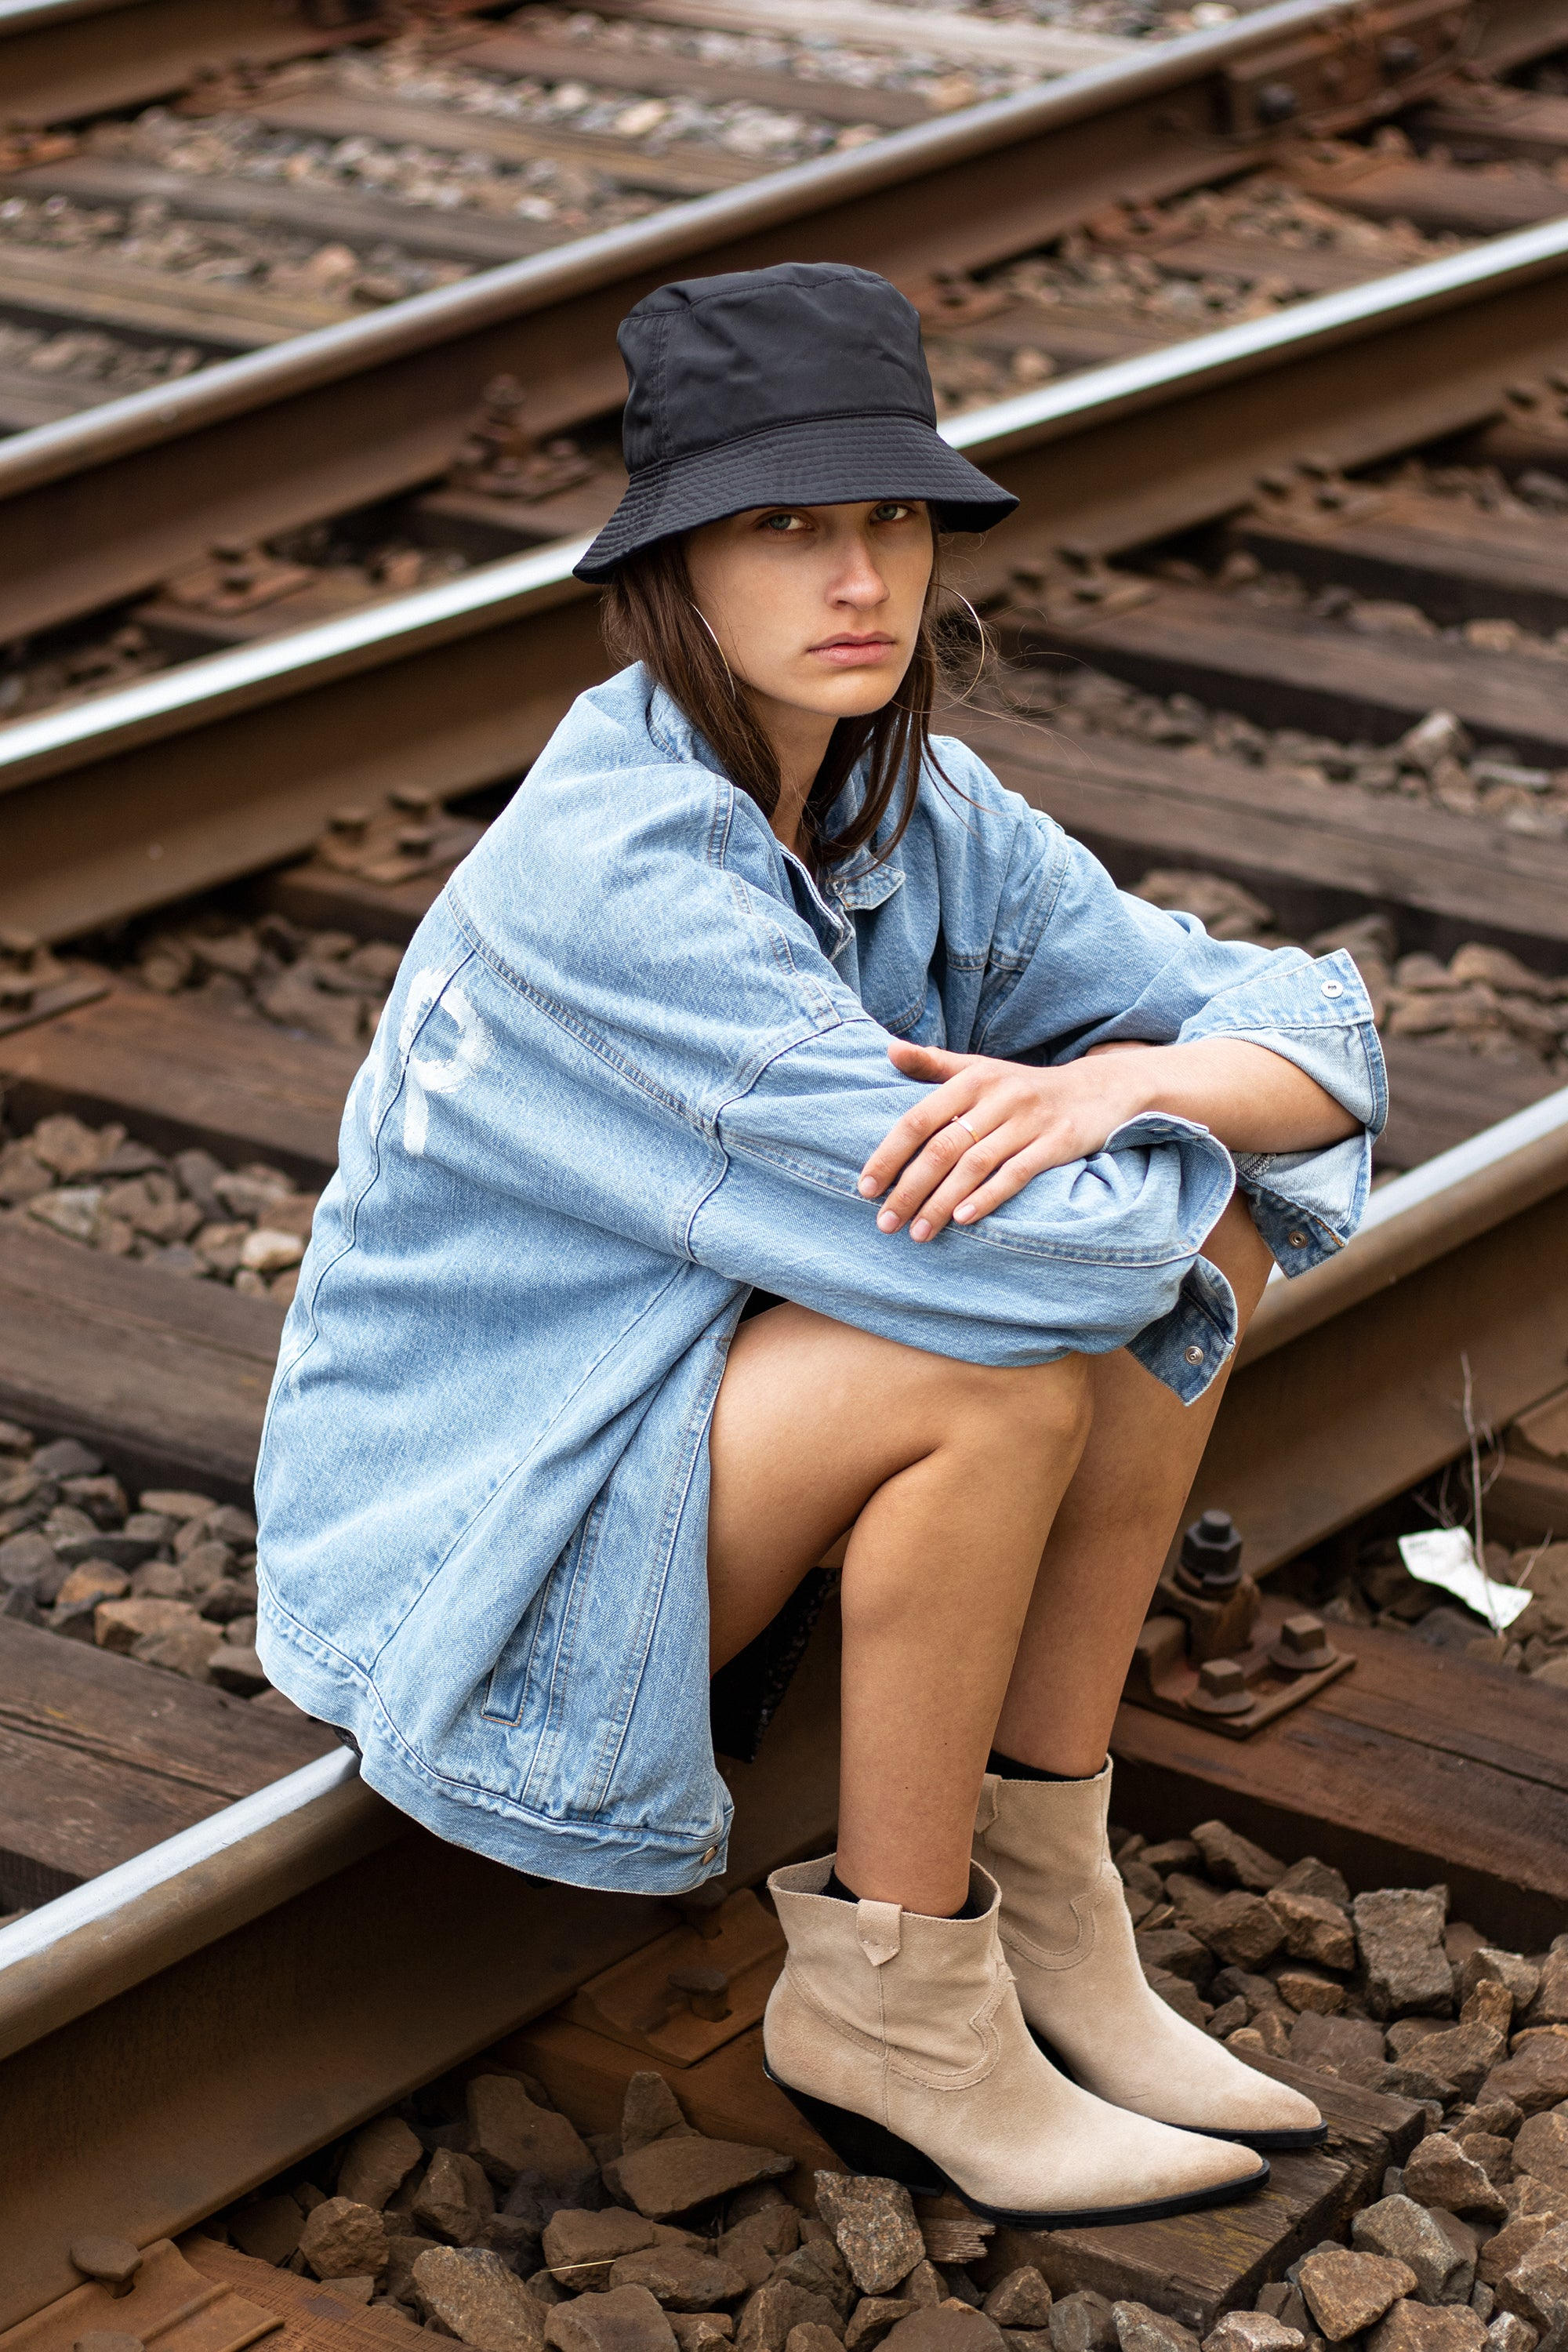 girl-le-slap-genes2-light-denim-jacket-streetstyle-cowboys-boots-photoshoot.jpg